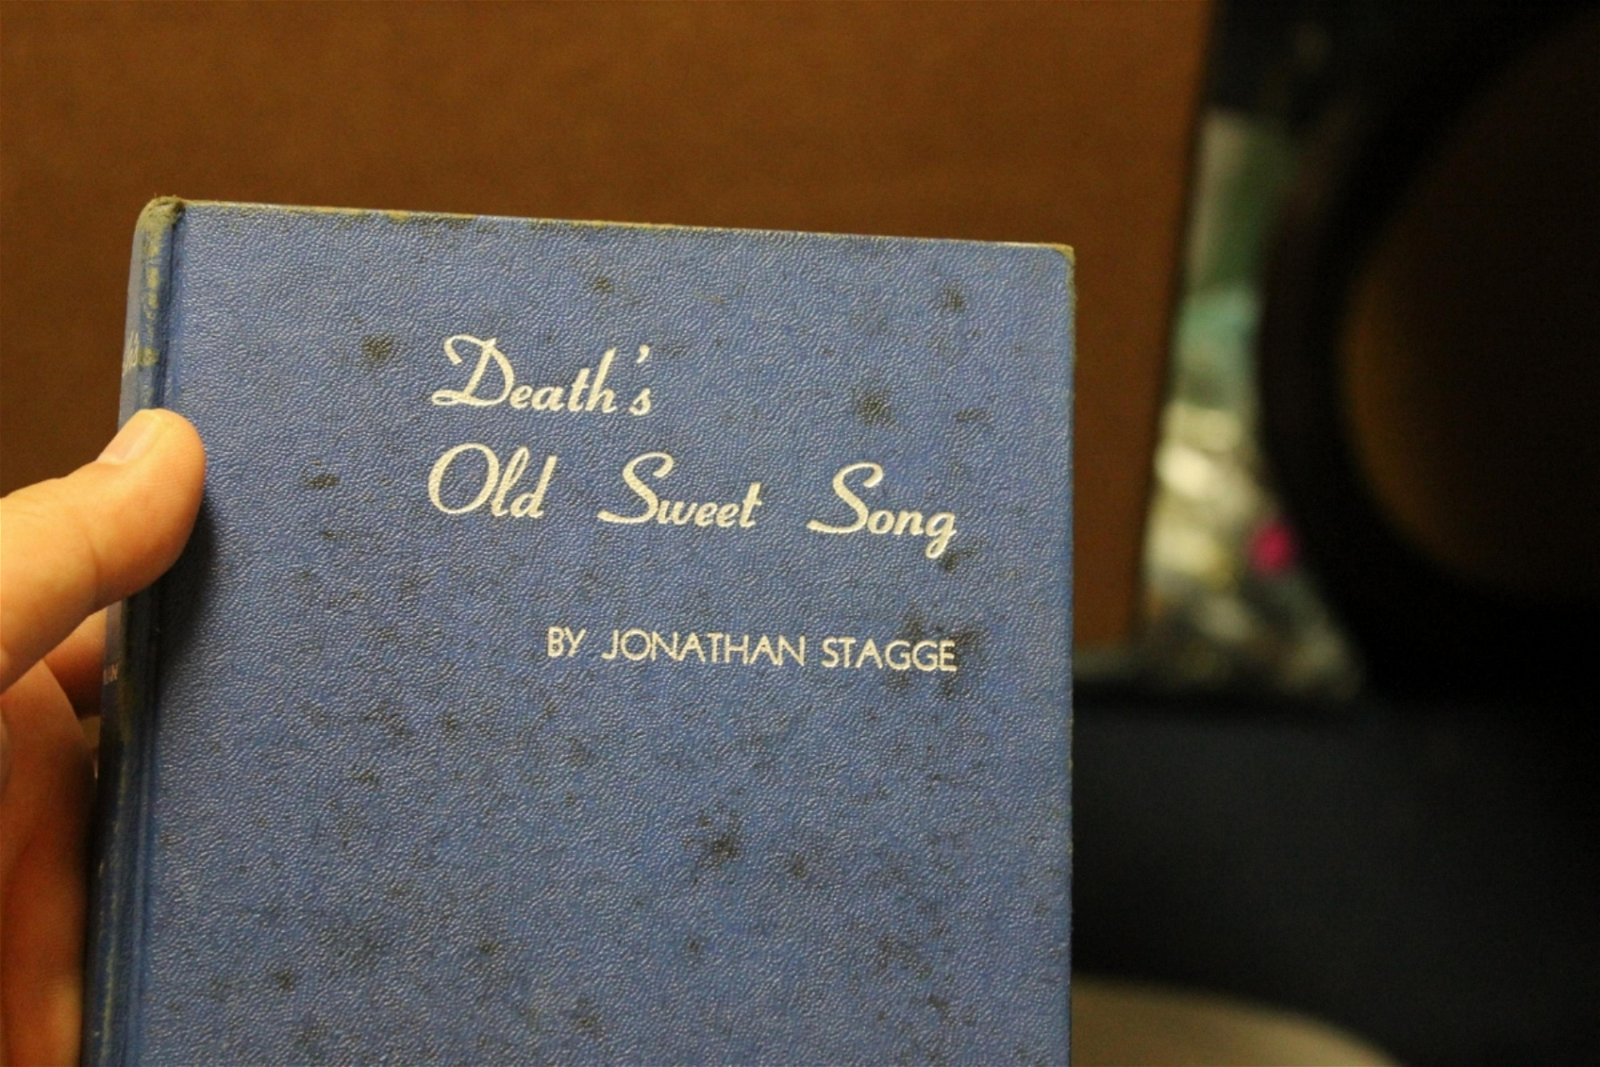 Death's Old Sweet Song by Jonathan Stagg